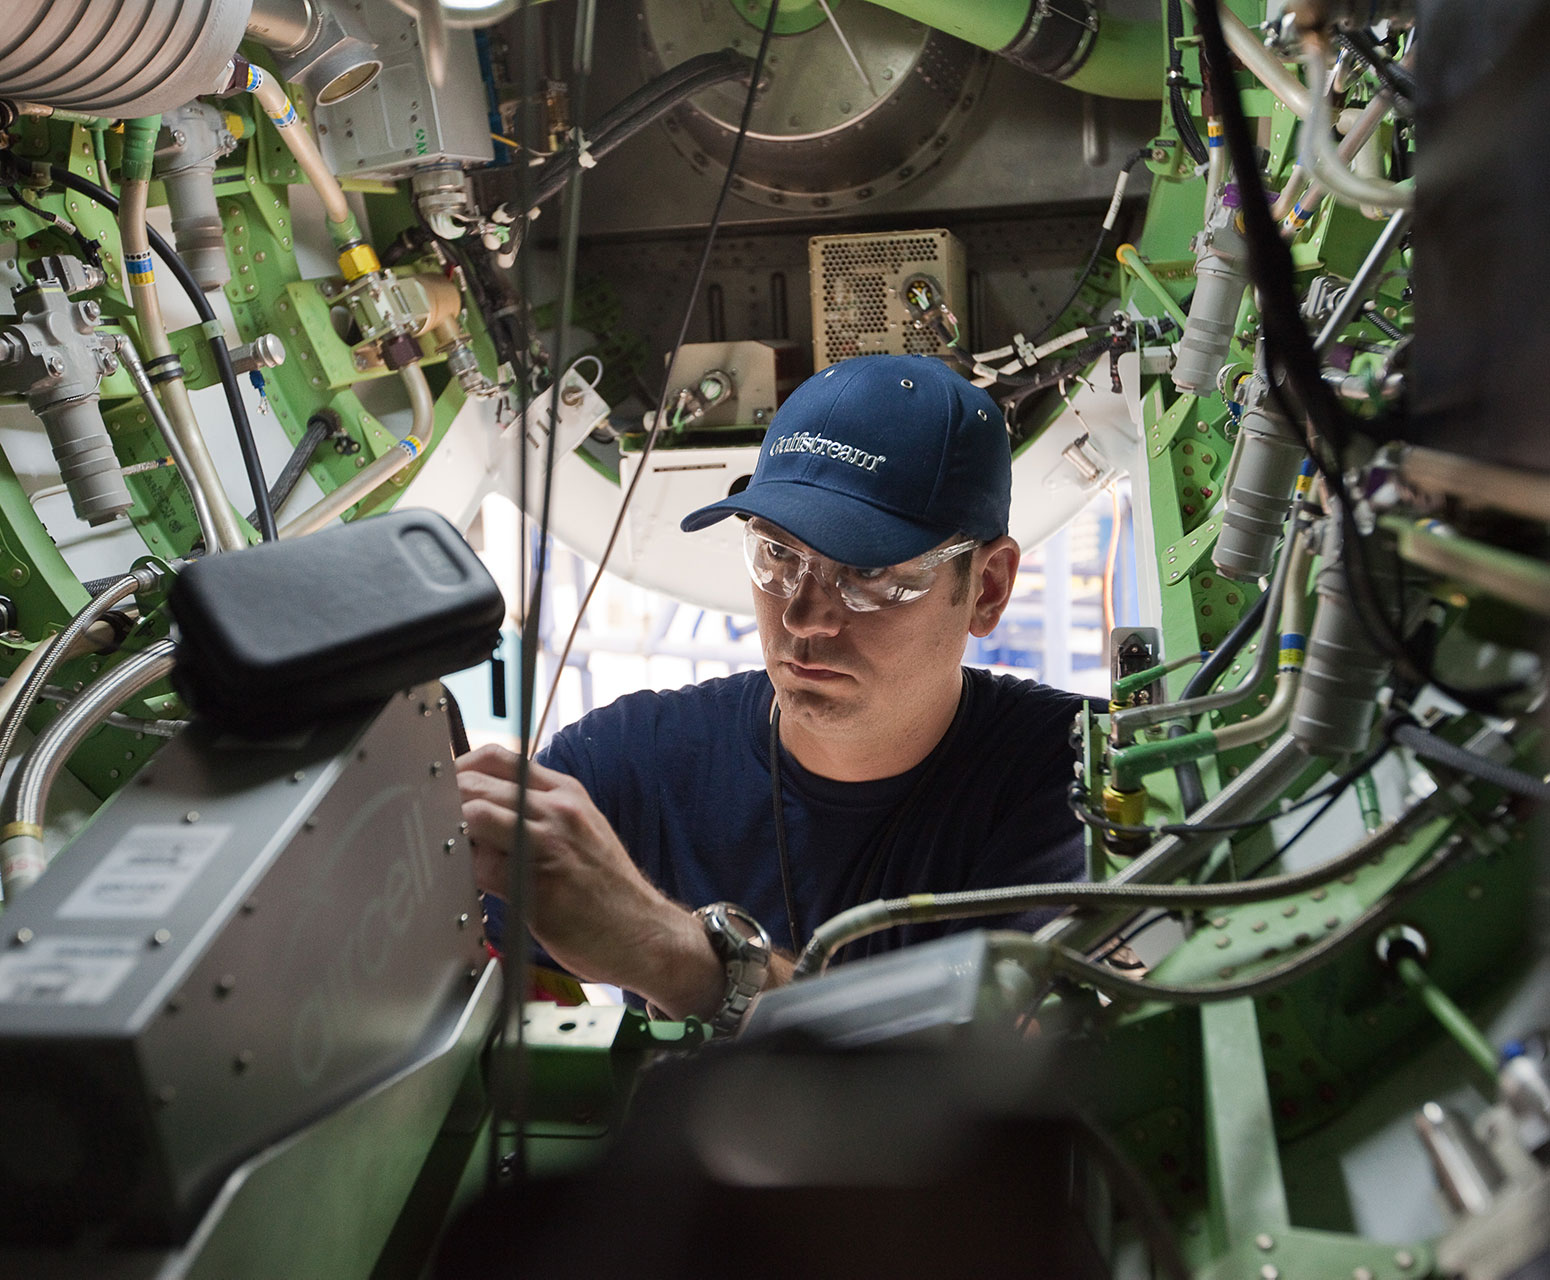 Technician with hat working on electronics inside aircraft